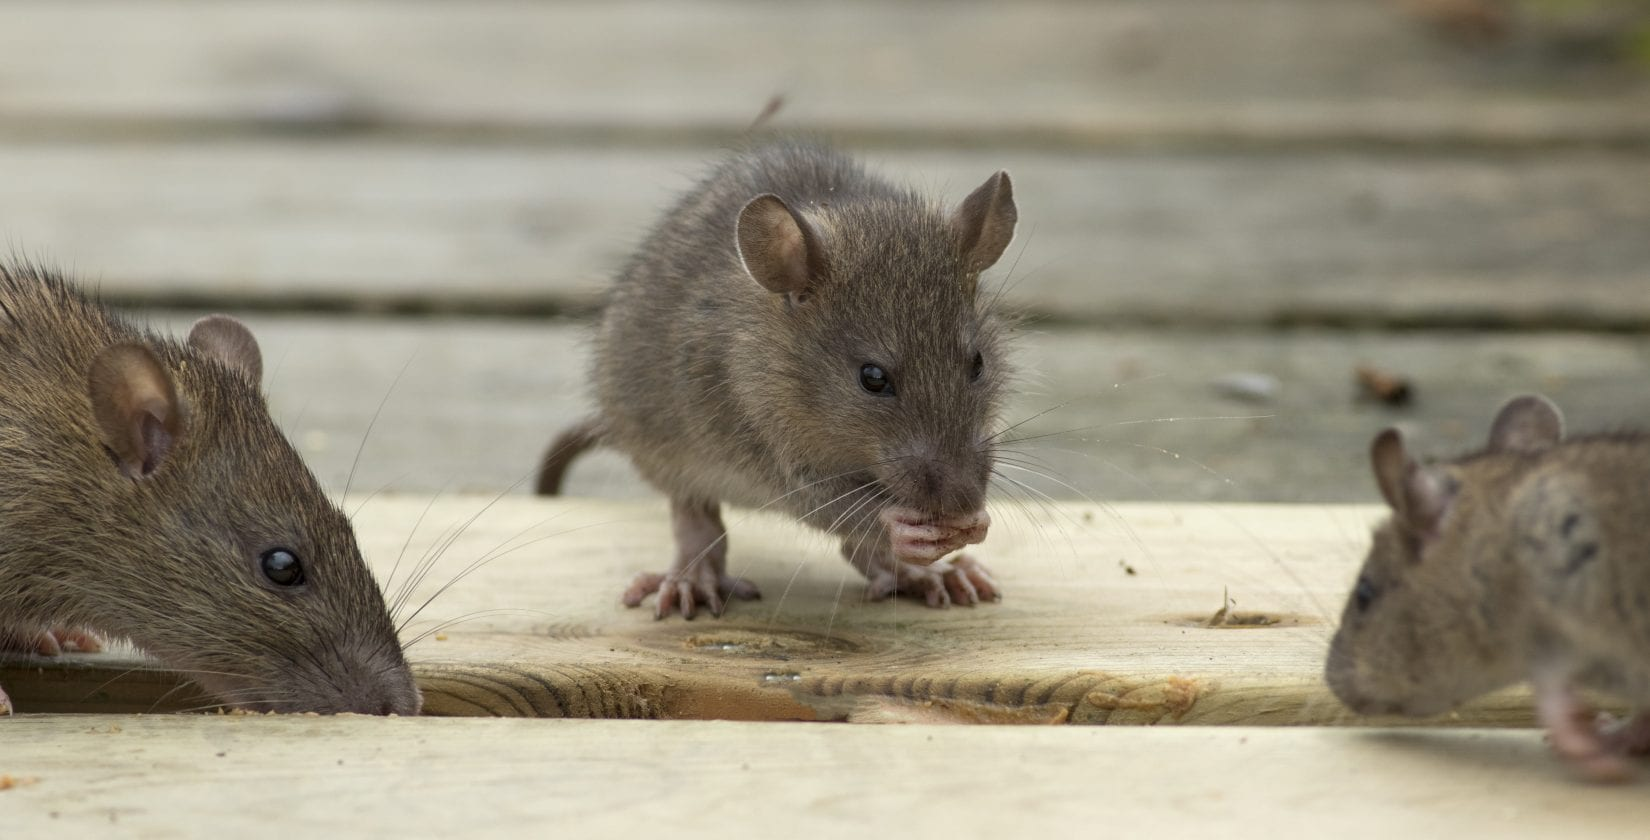 Rodent control prevents disease